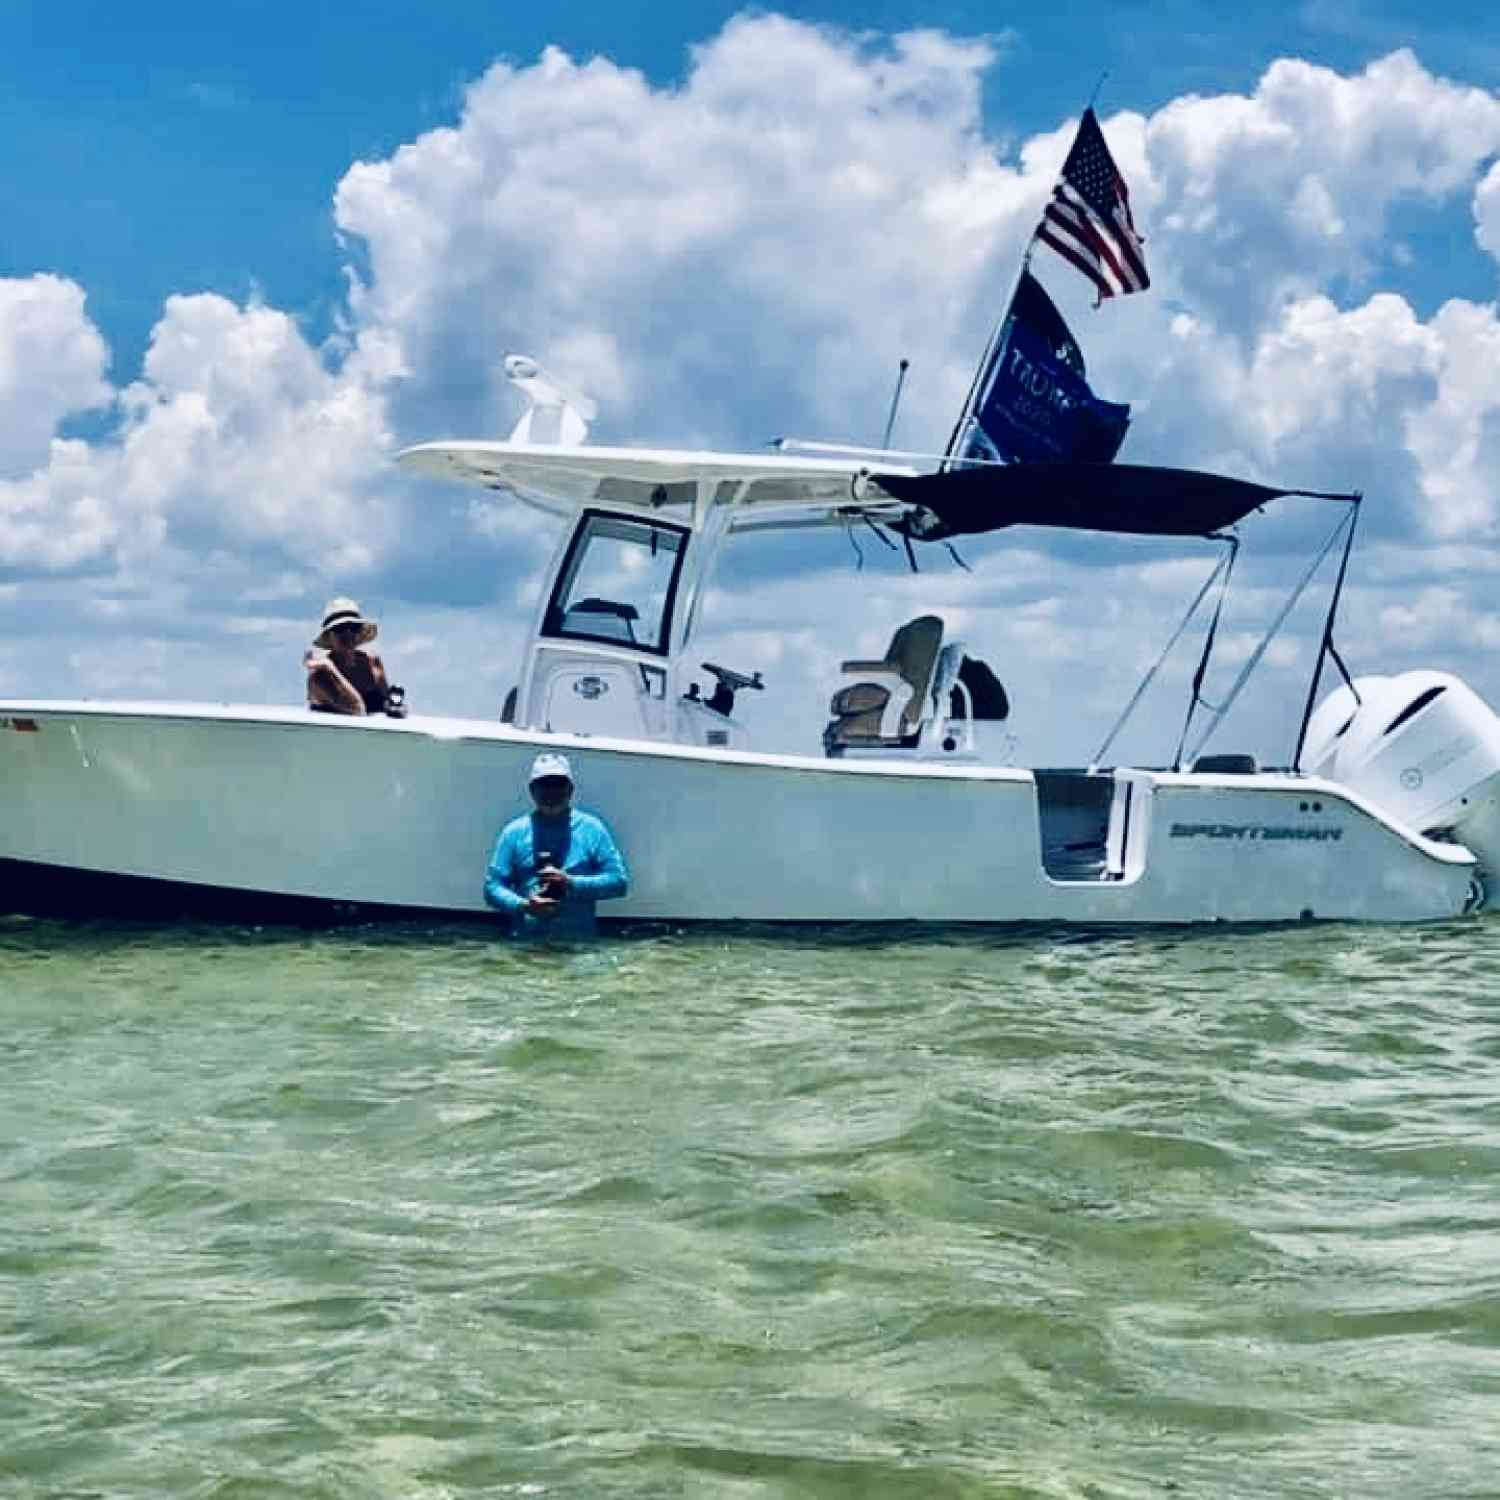 Title: Family day - On board their Sportsman Open 282 Center Console - Location: Destin Florida. Participating in the Photo Contest #SportsmanJuly2020